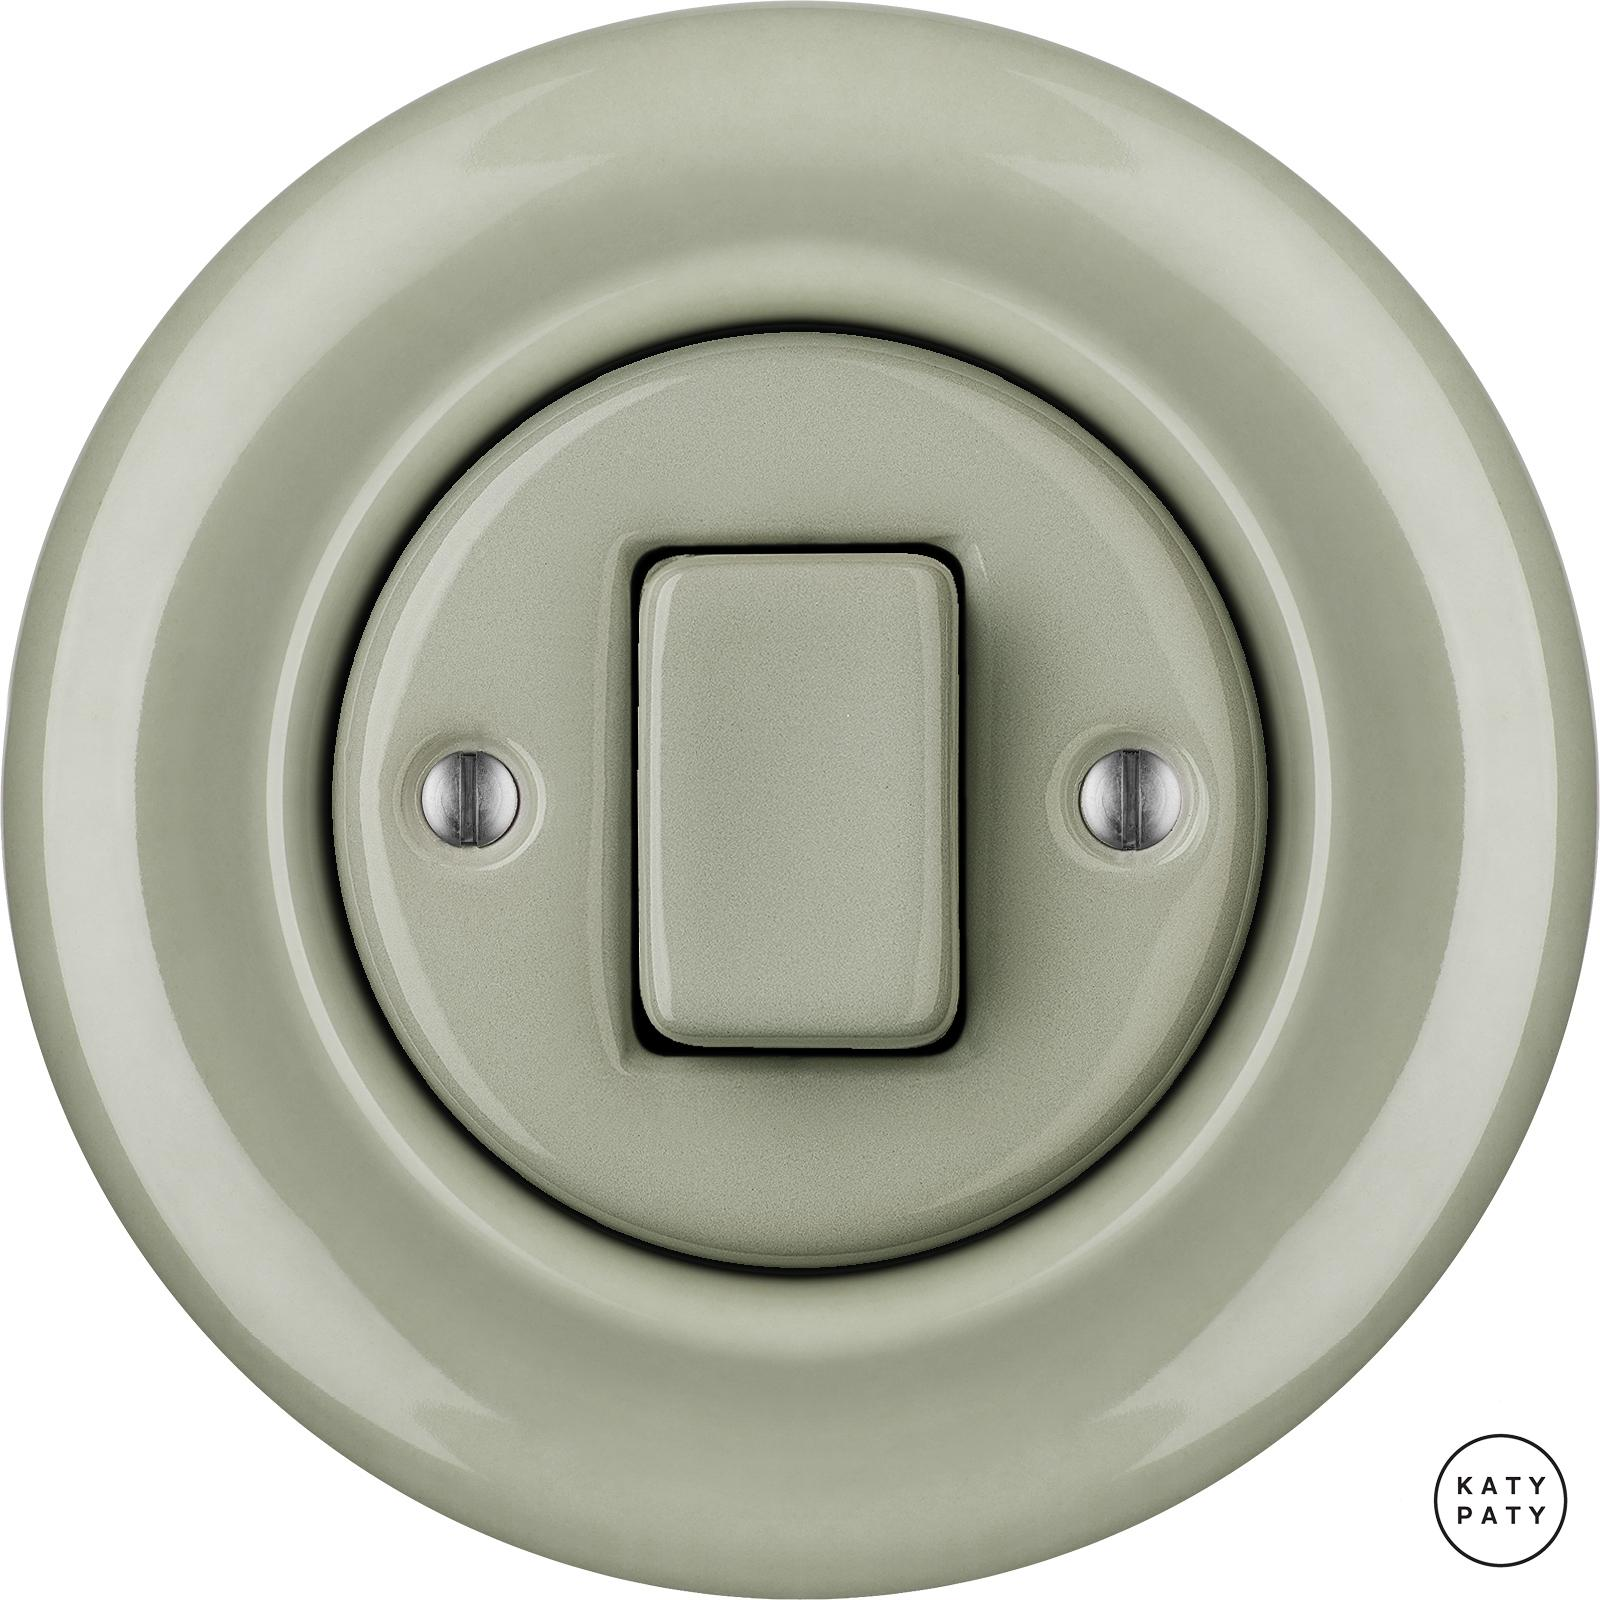 Porcelain switches - 1 key - FAT ()  - CHLORA | Katy Paty